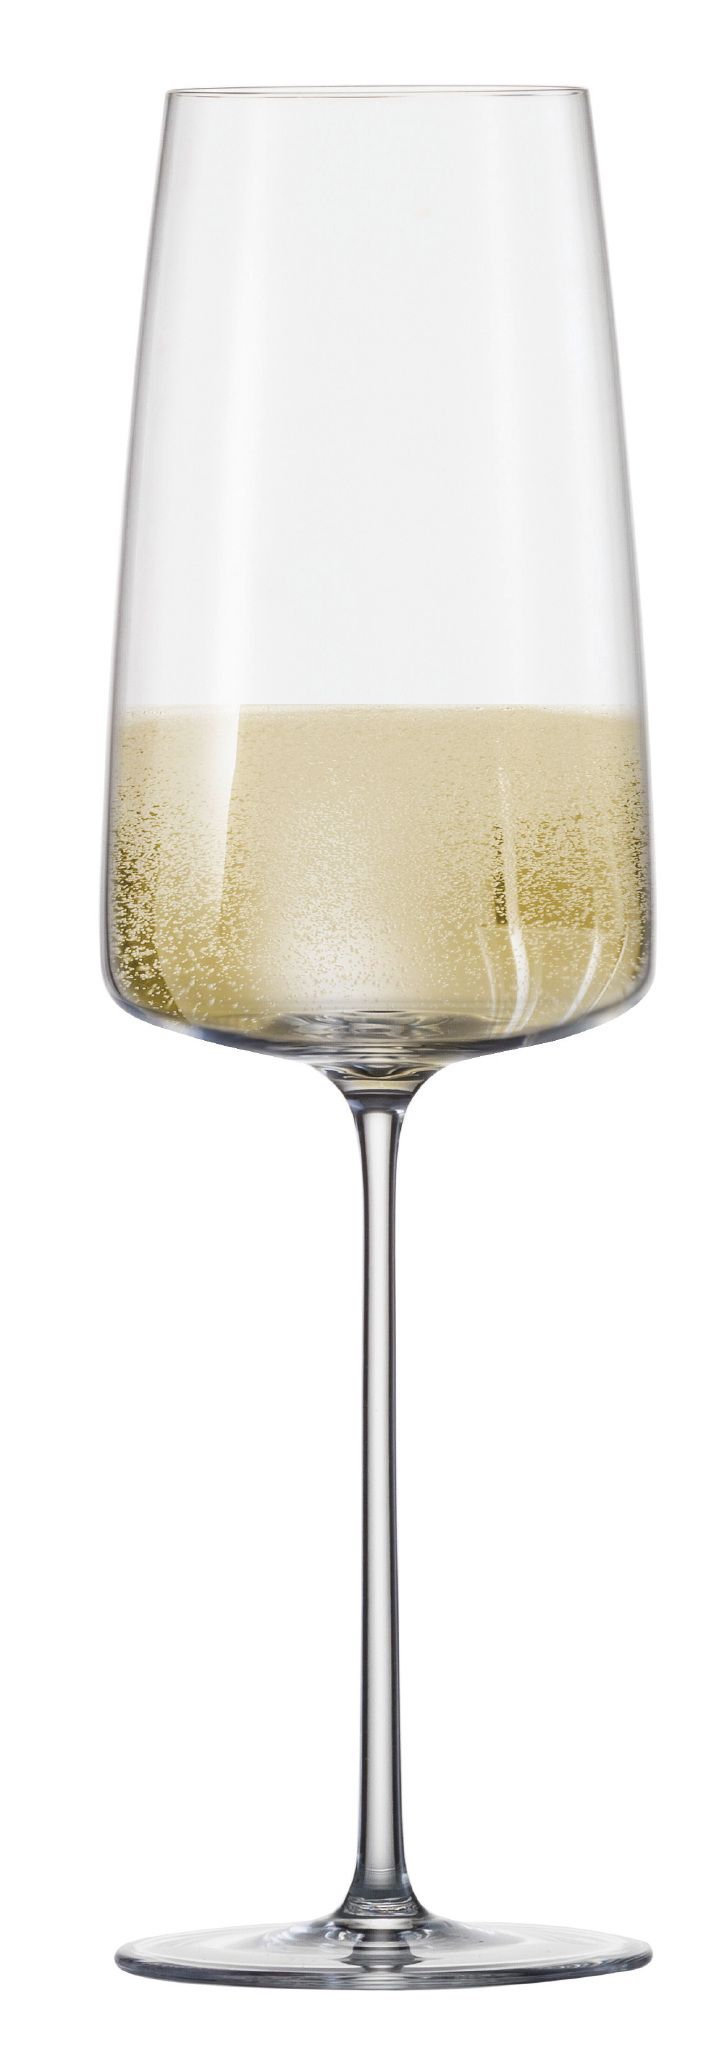 Zwiesel 1872 Simplify champagneglas Light & Fresh 41cl